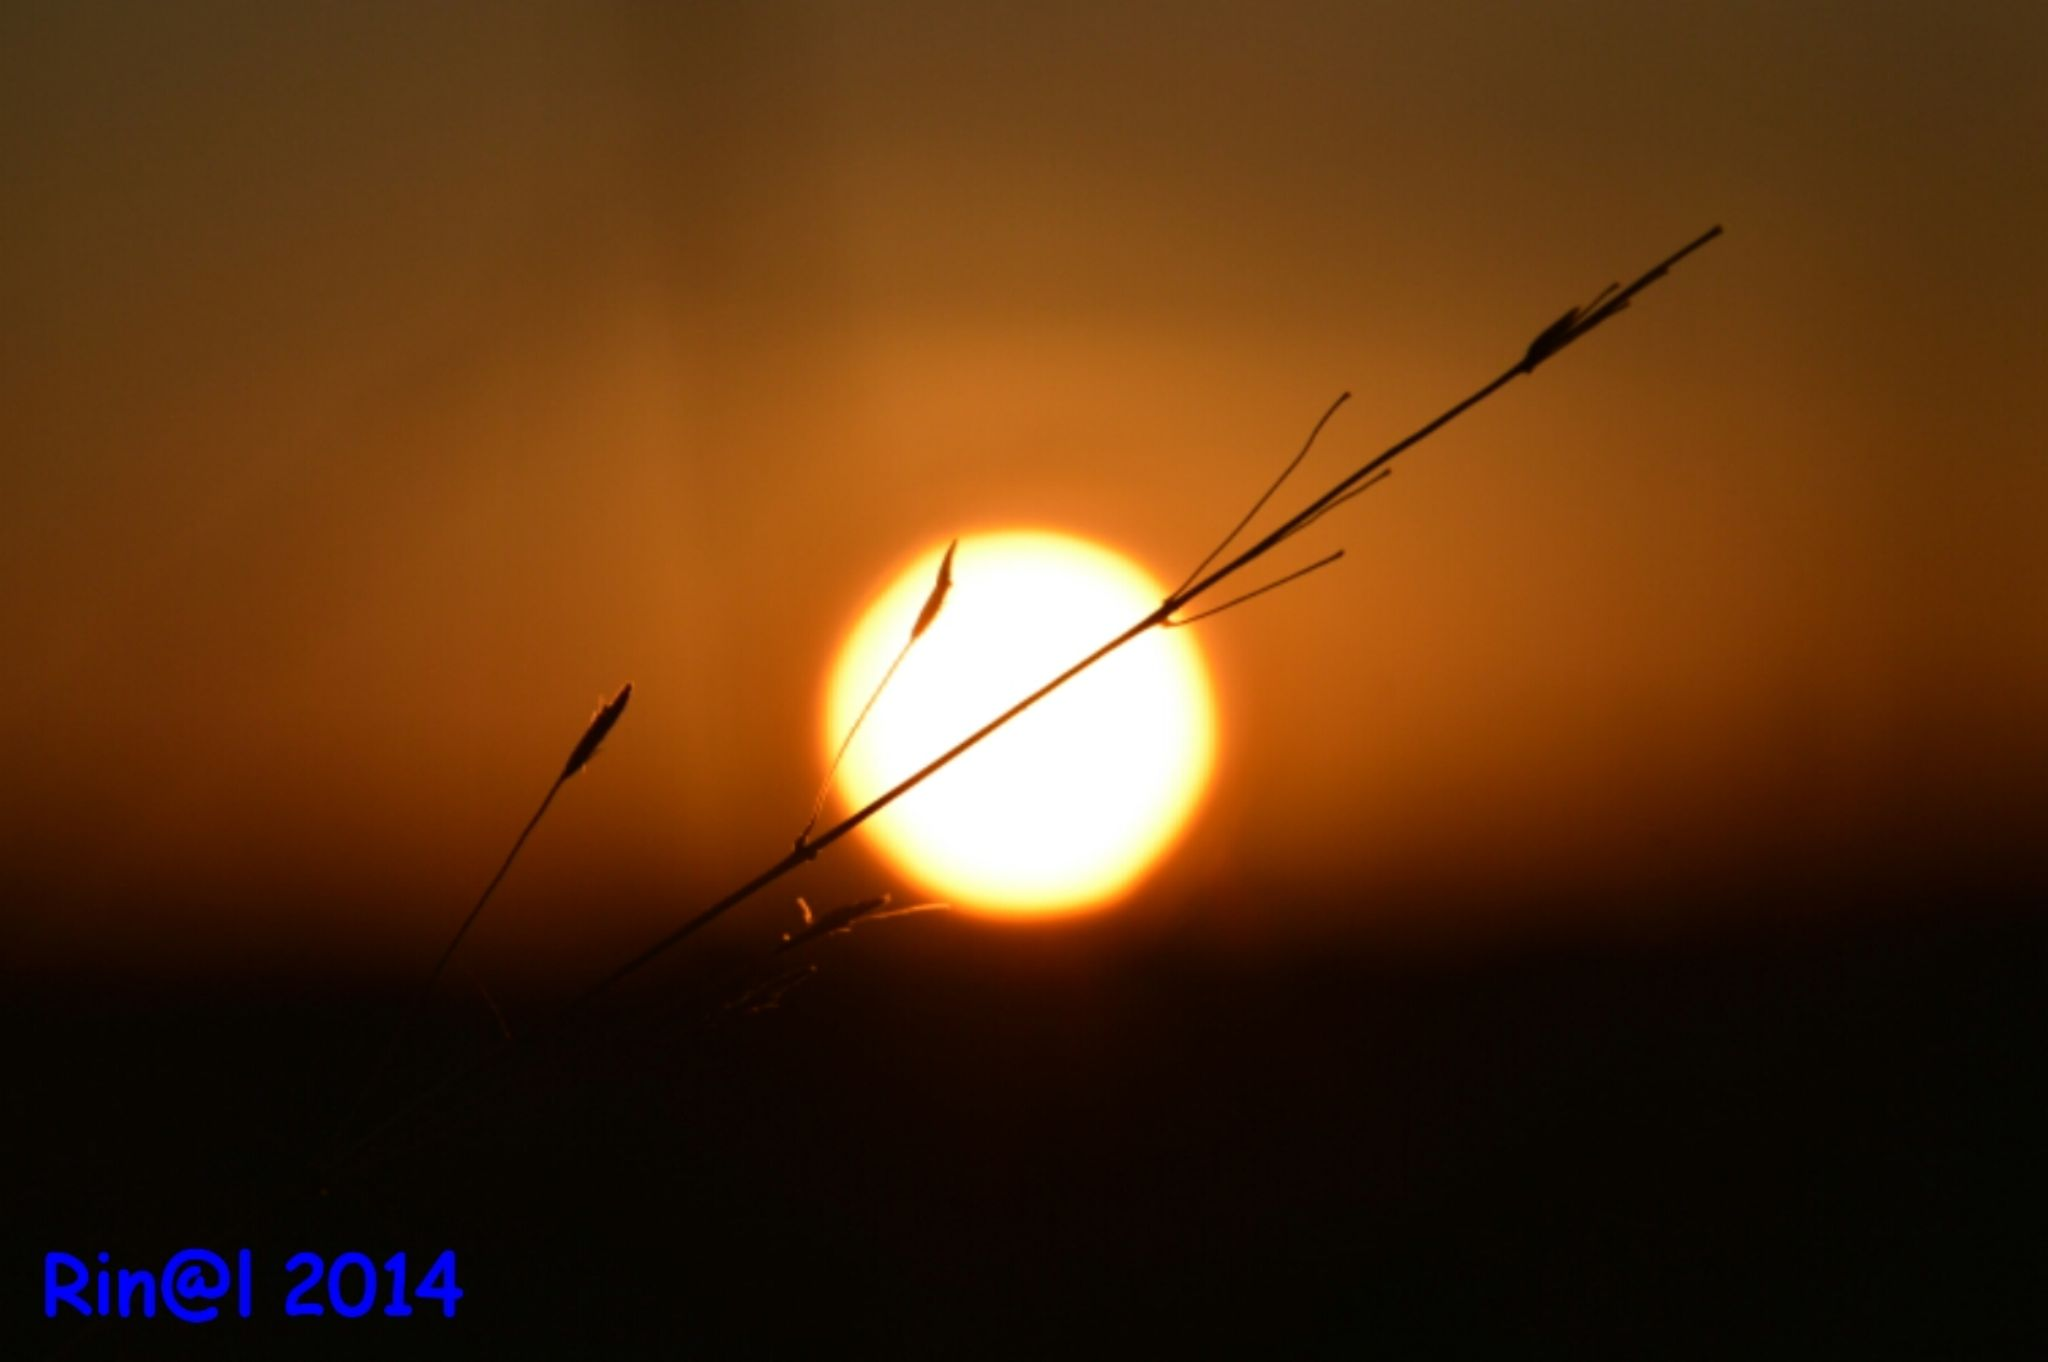 piece of grass in the morning by rinal.dino1